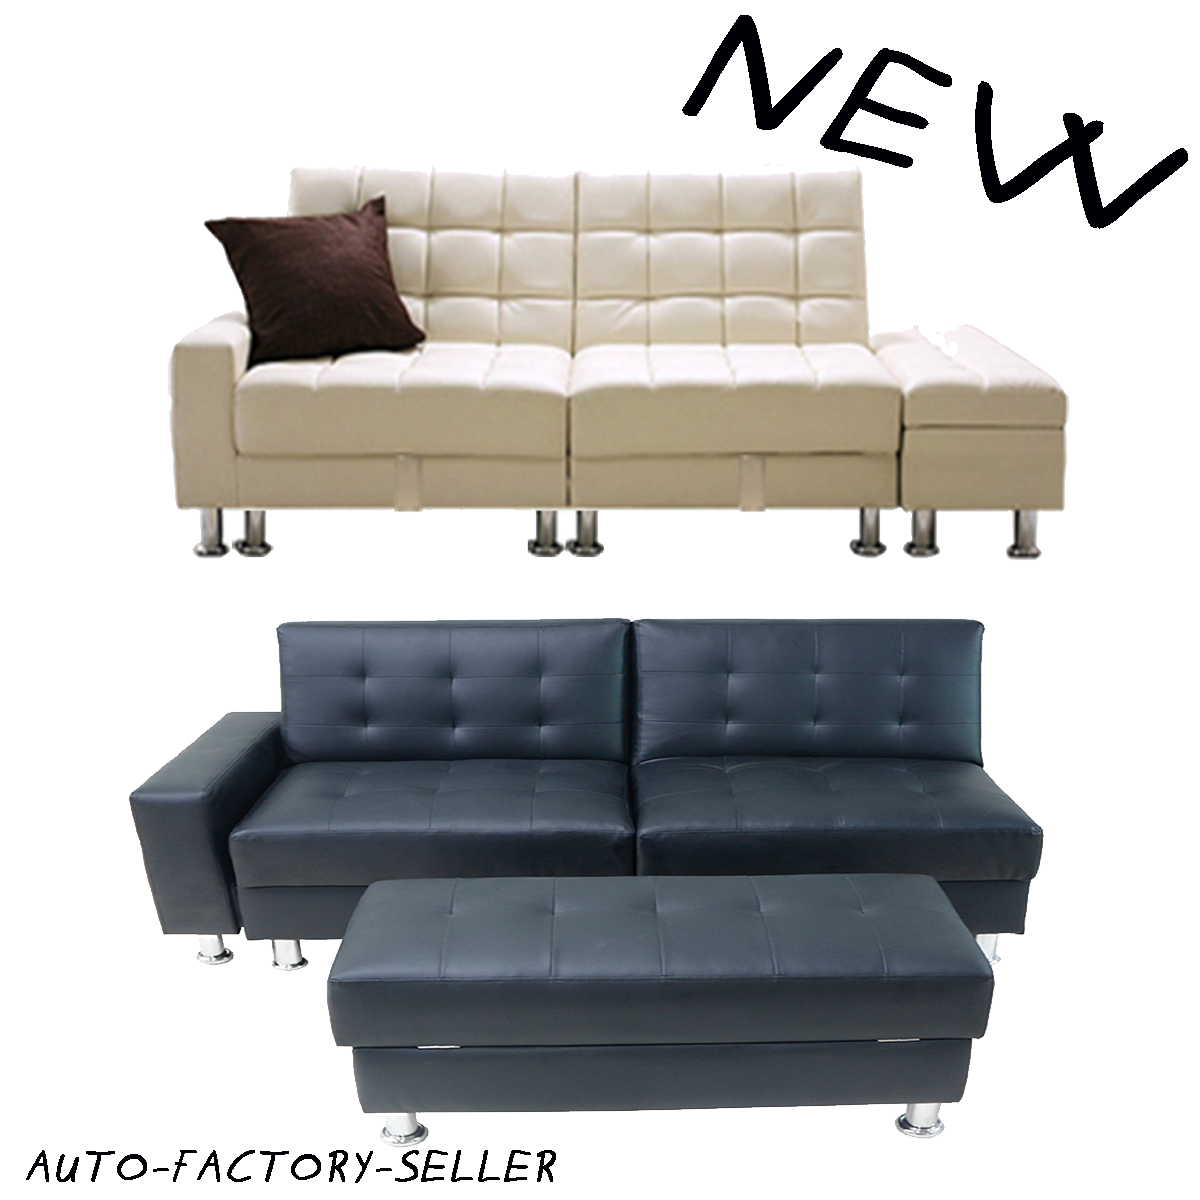 New Style Sofa Bed 3 5 Seater Foldable Storage Sectional Living